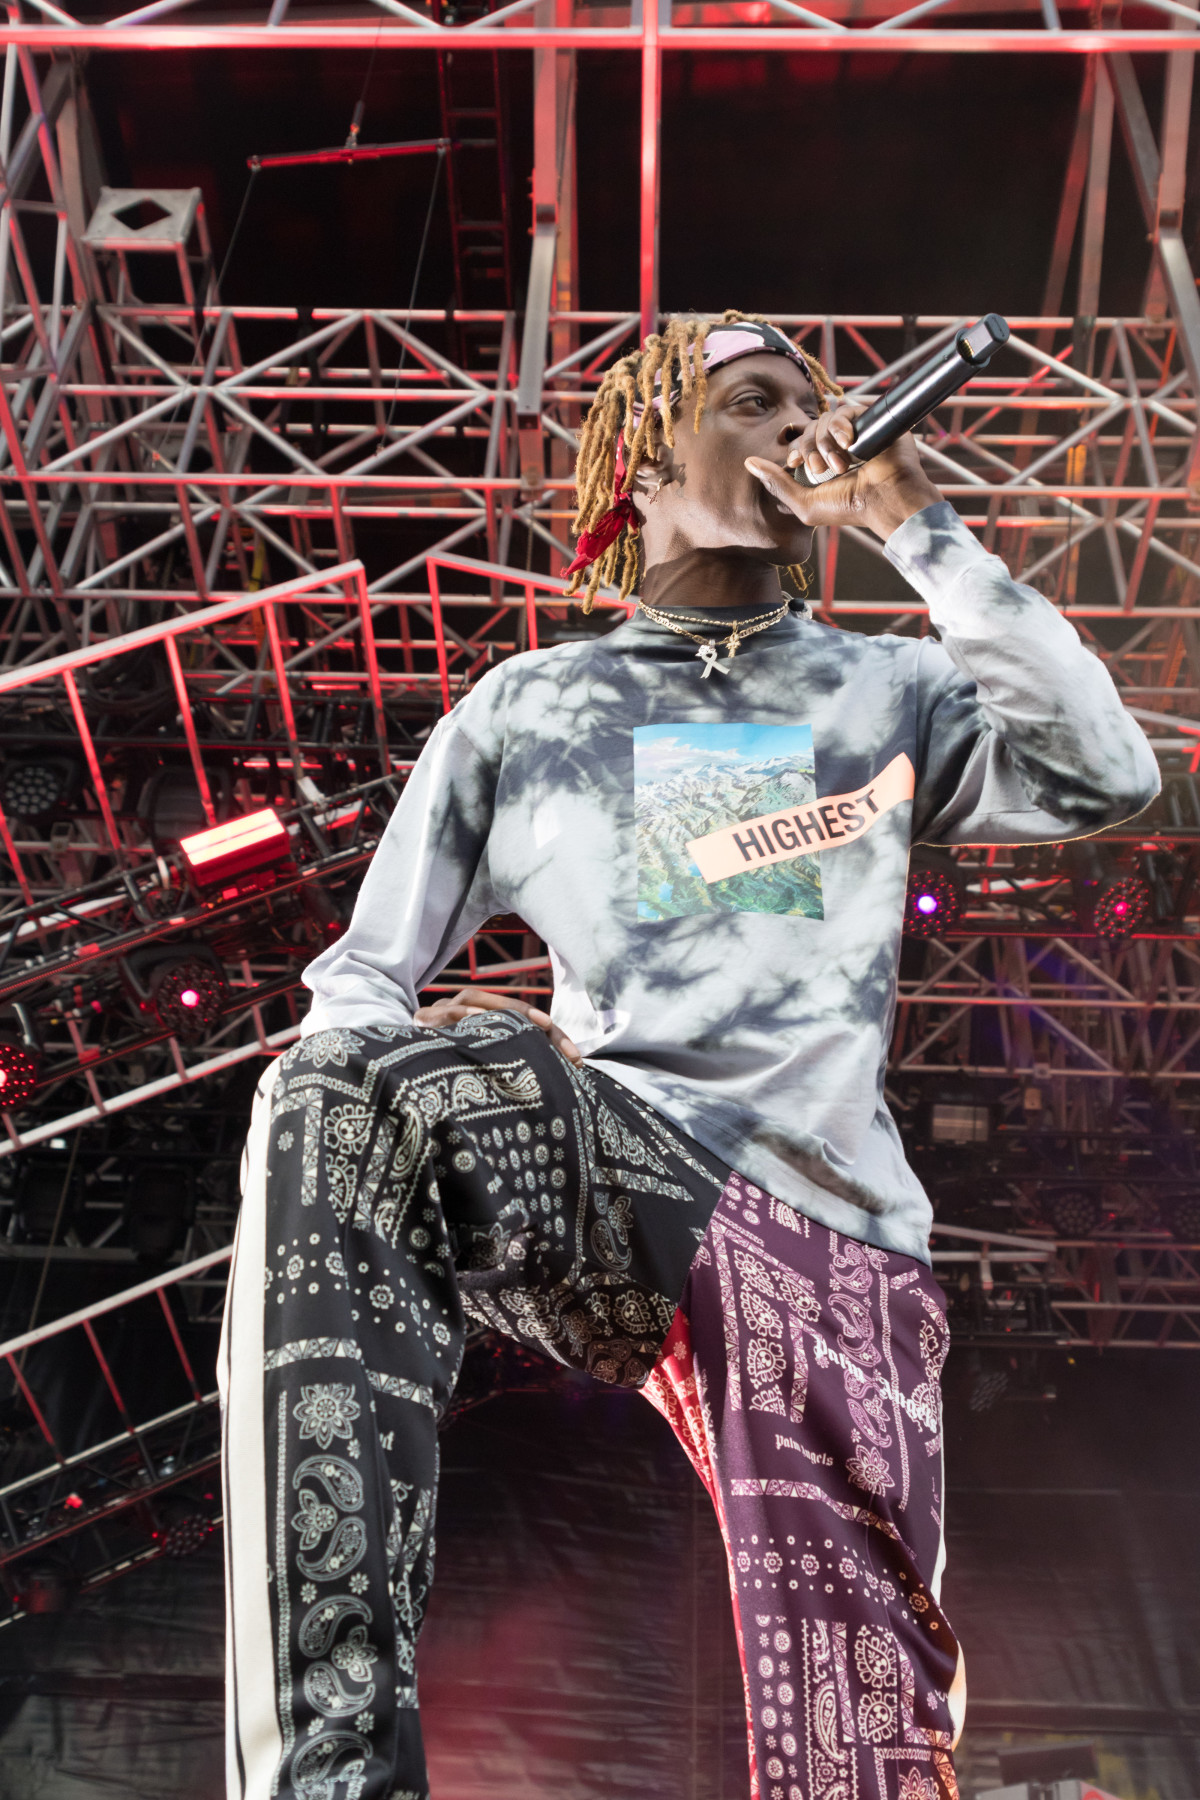 Underachievers perform live at Pier 17 in New York on August 22 2019